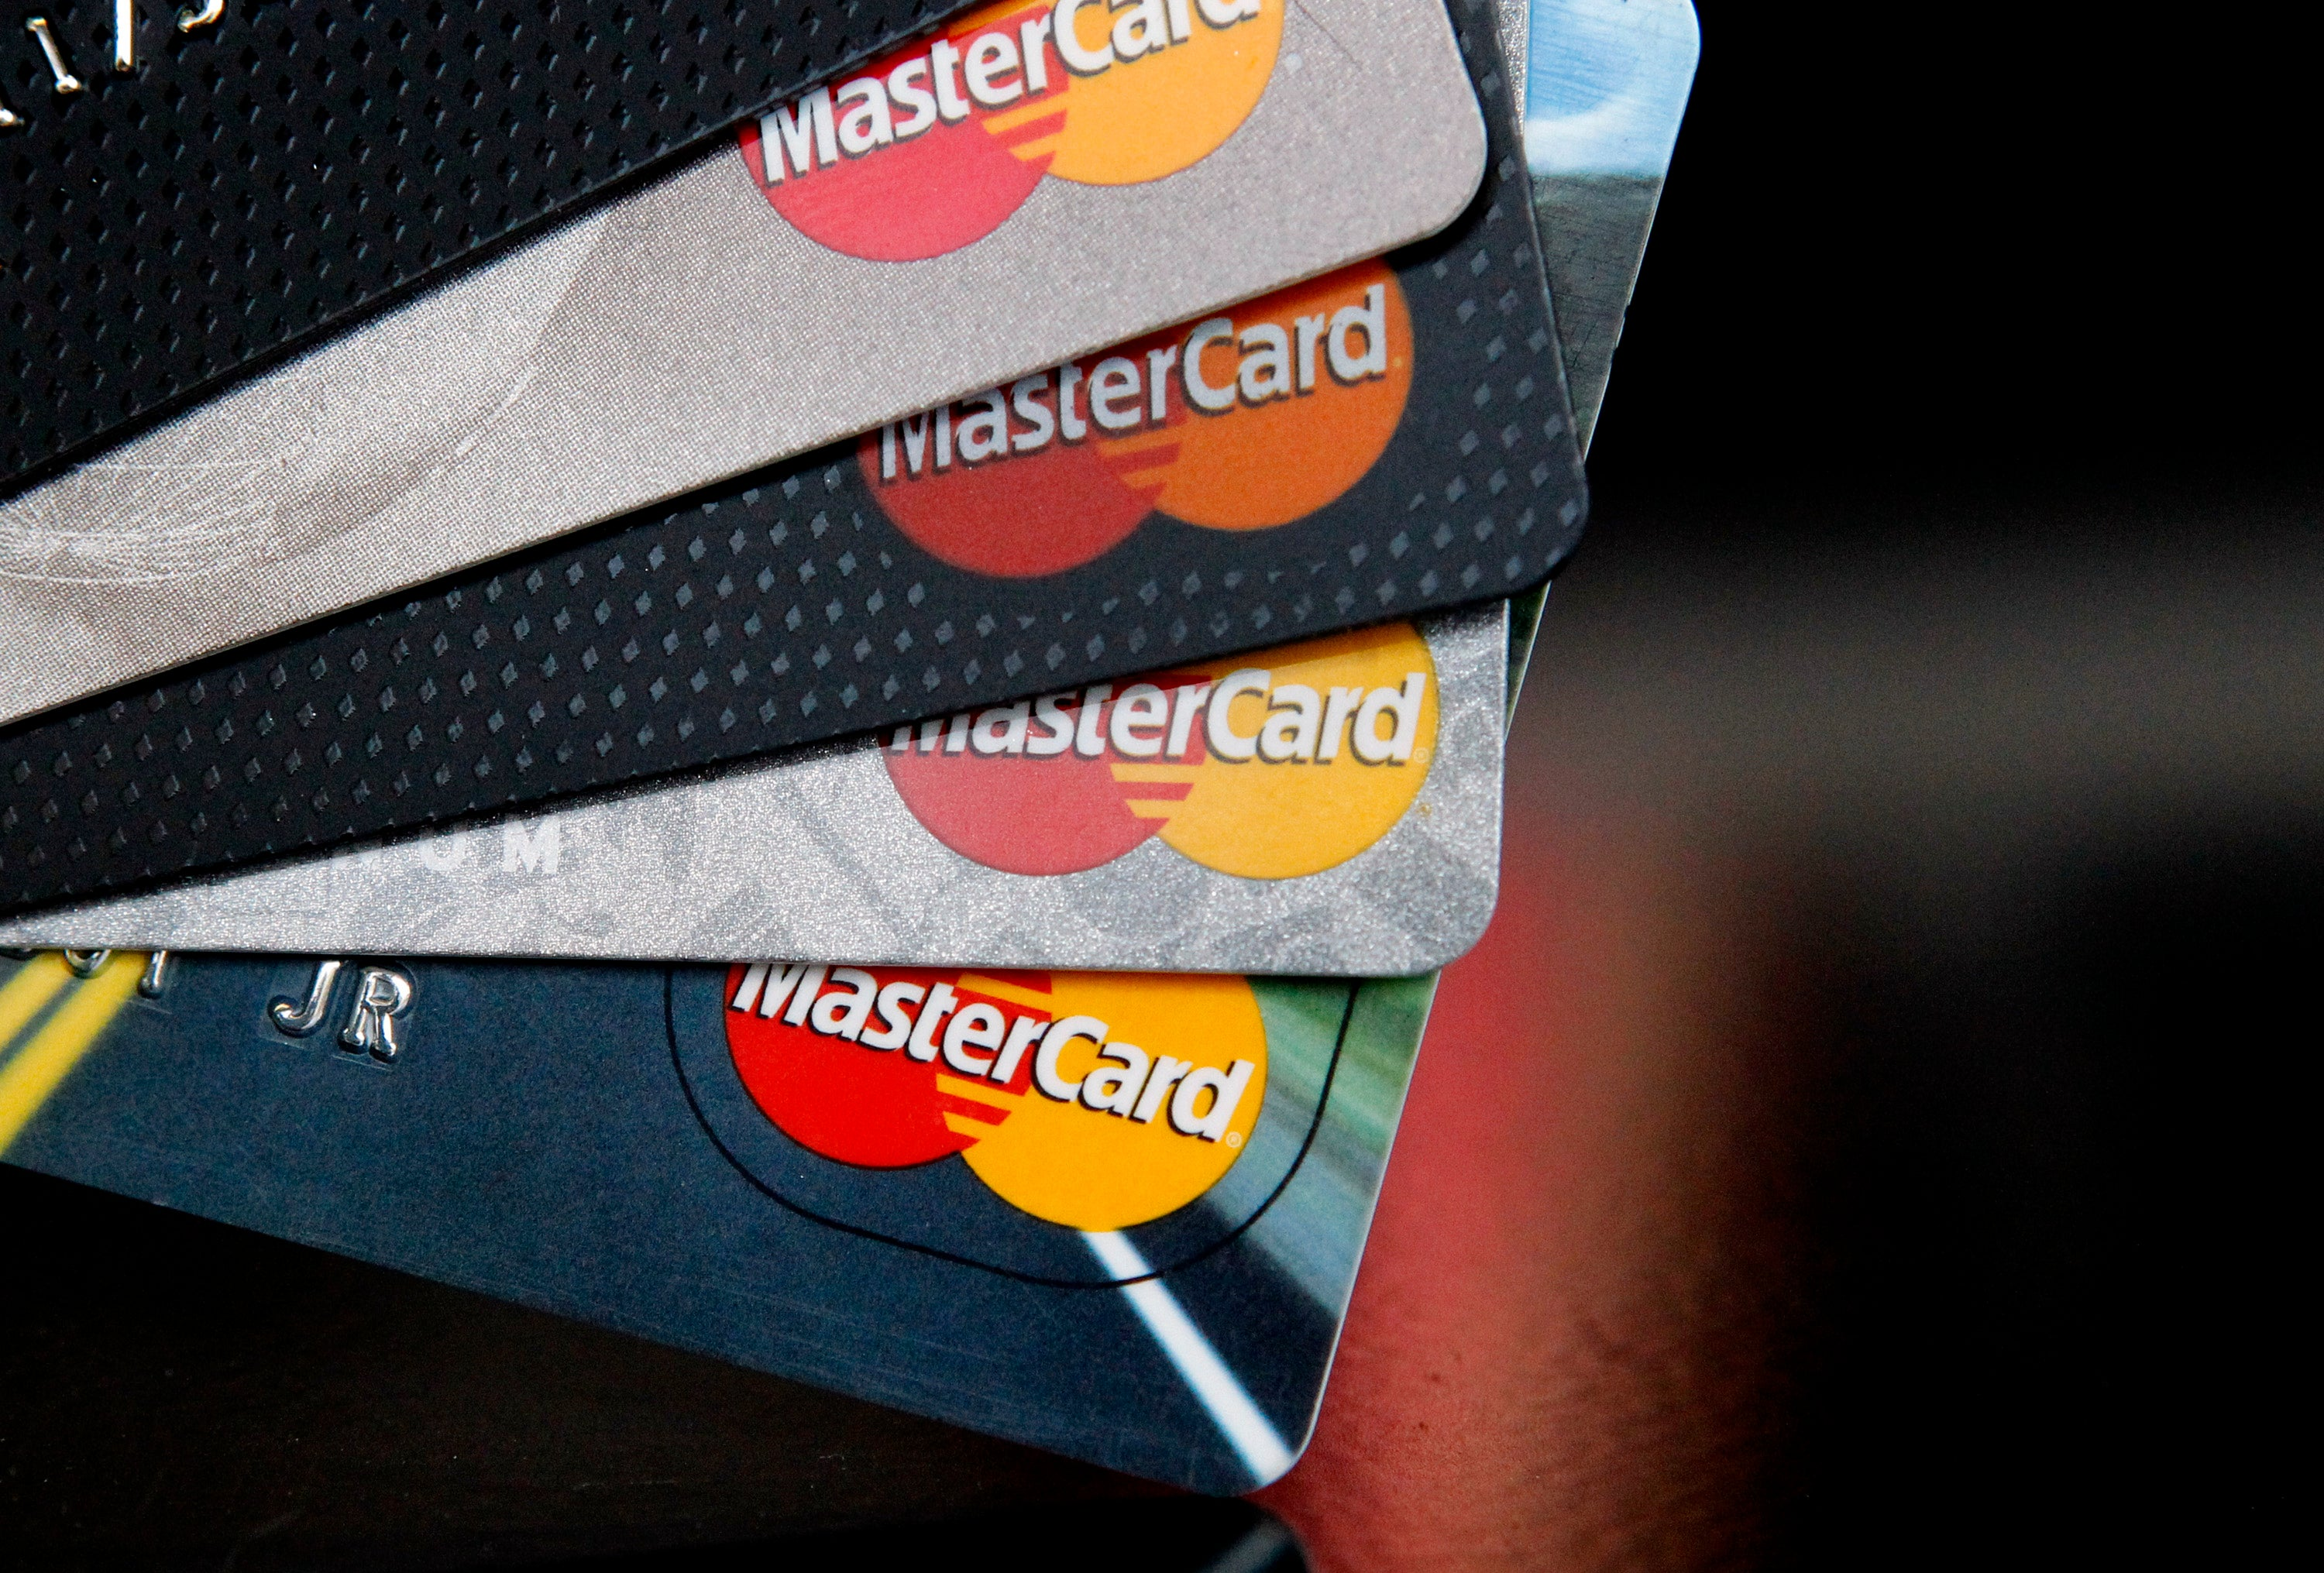 Mastercard Patents See Blockchain For Data Records